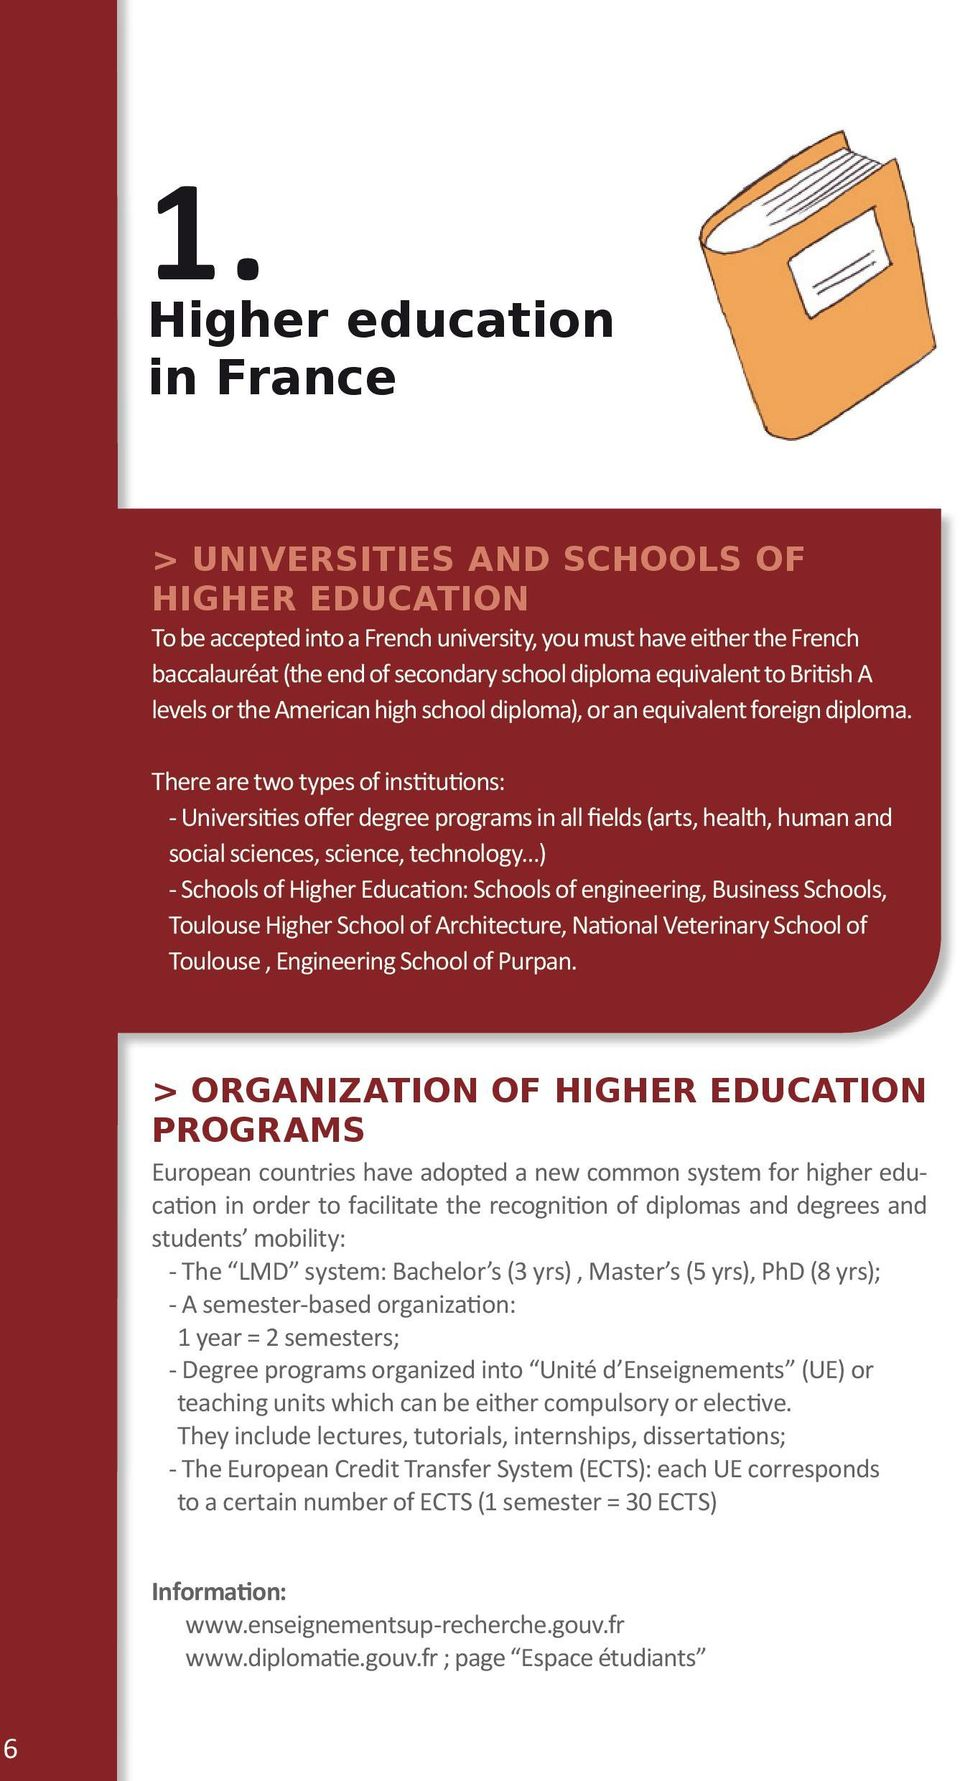 There are two types of institutions: - Universities offer degree programs in all fields (arts, health, human and social sciences, science, technology ) - Schools of Higher Education: Schools of